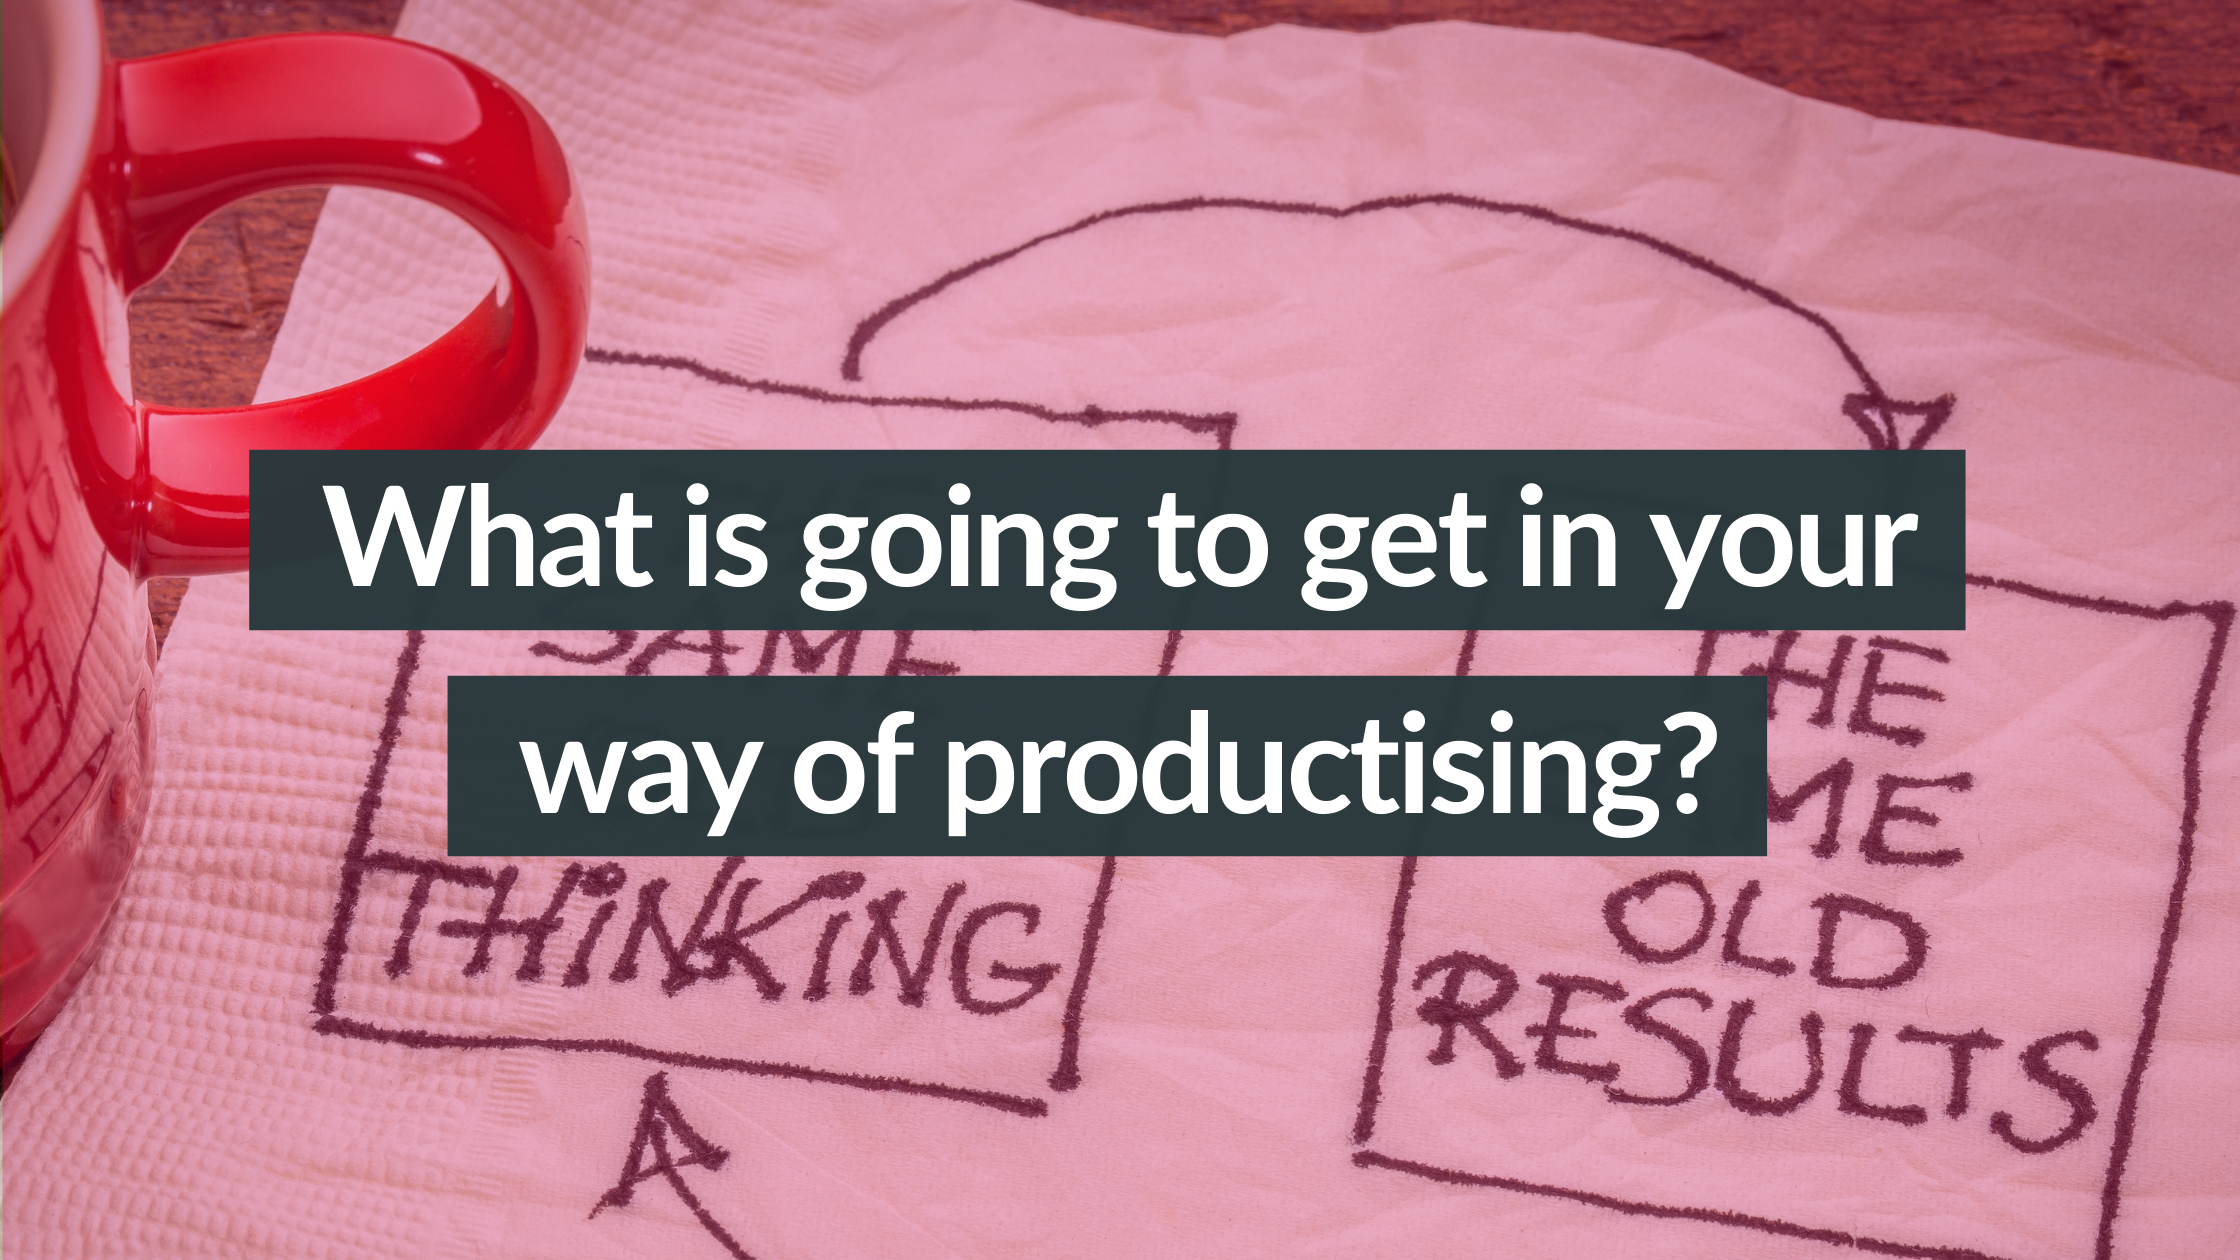 What is going to get in your way of productising